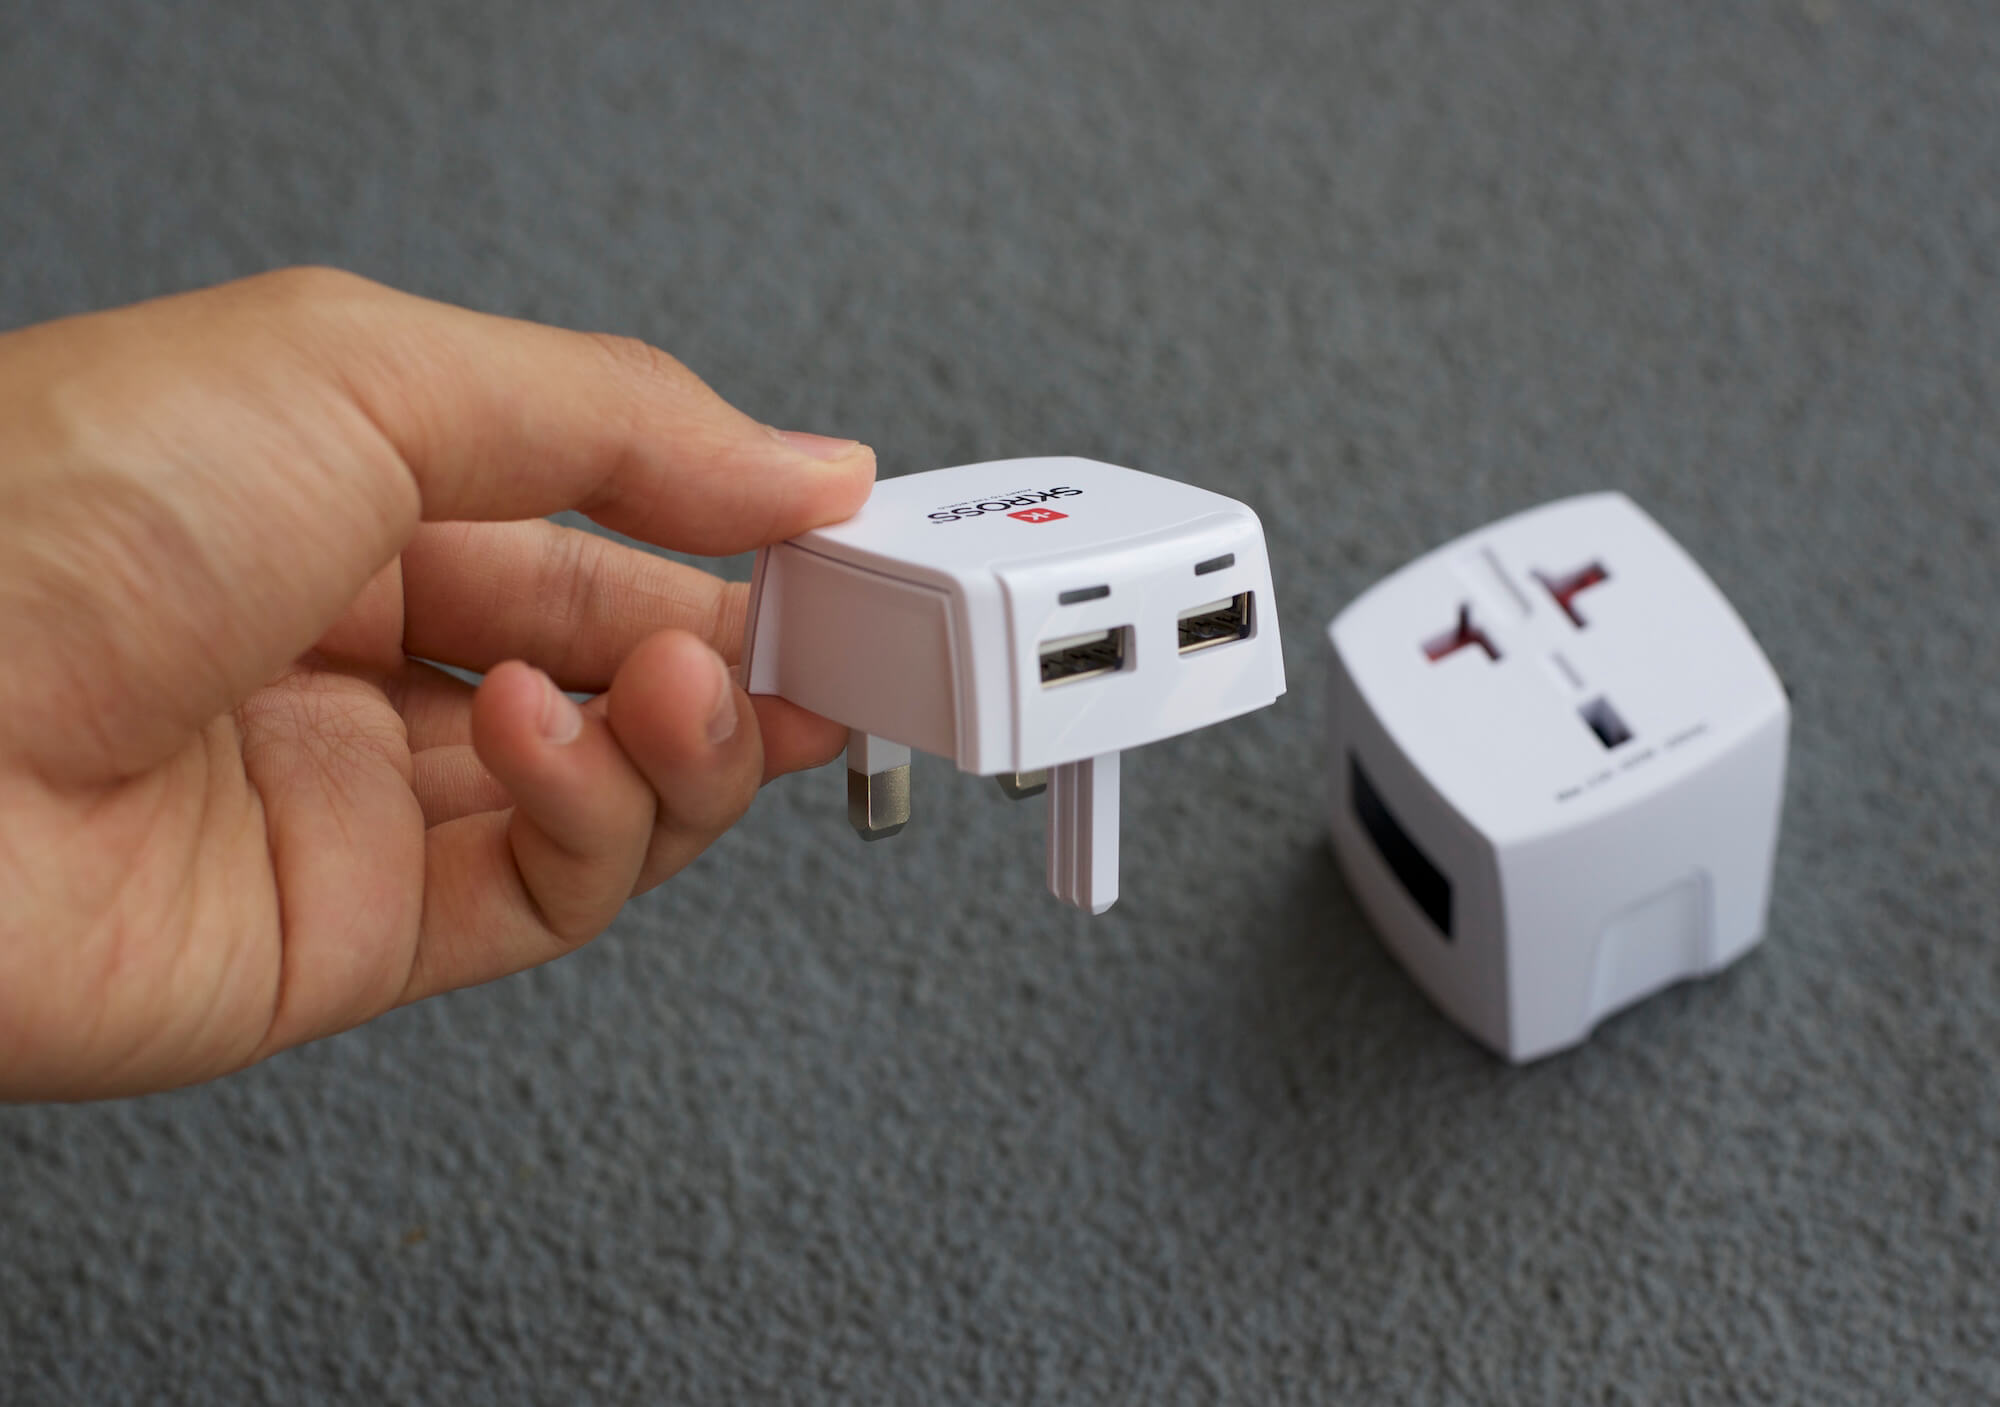 USB charging port add-on